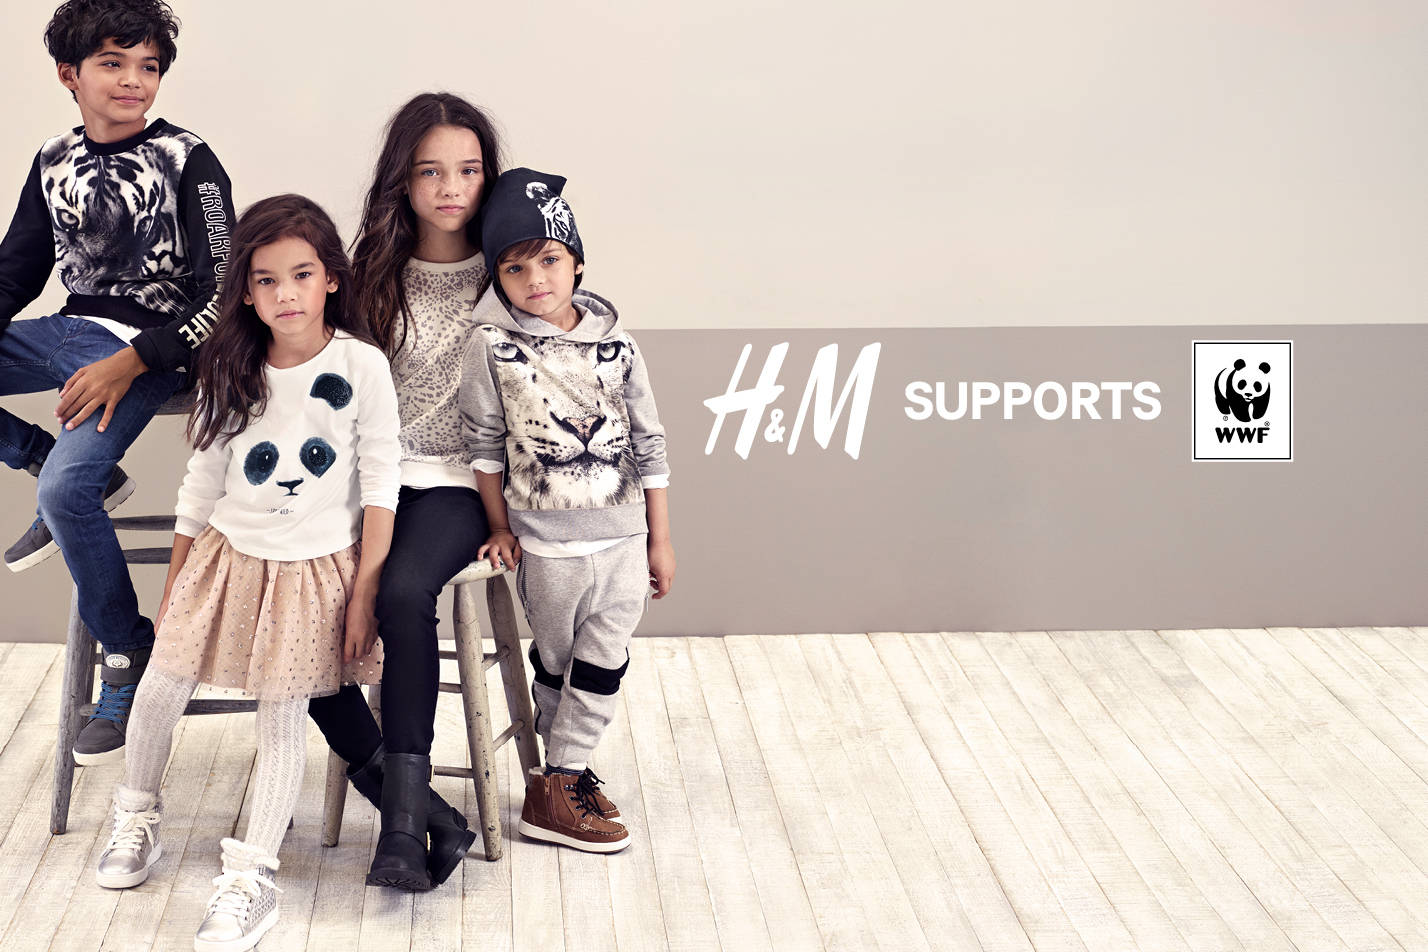 Campaign shot for H&M's Autumn 2016 Kids Collection which raised funds for WWF.